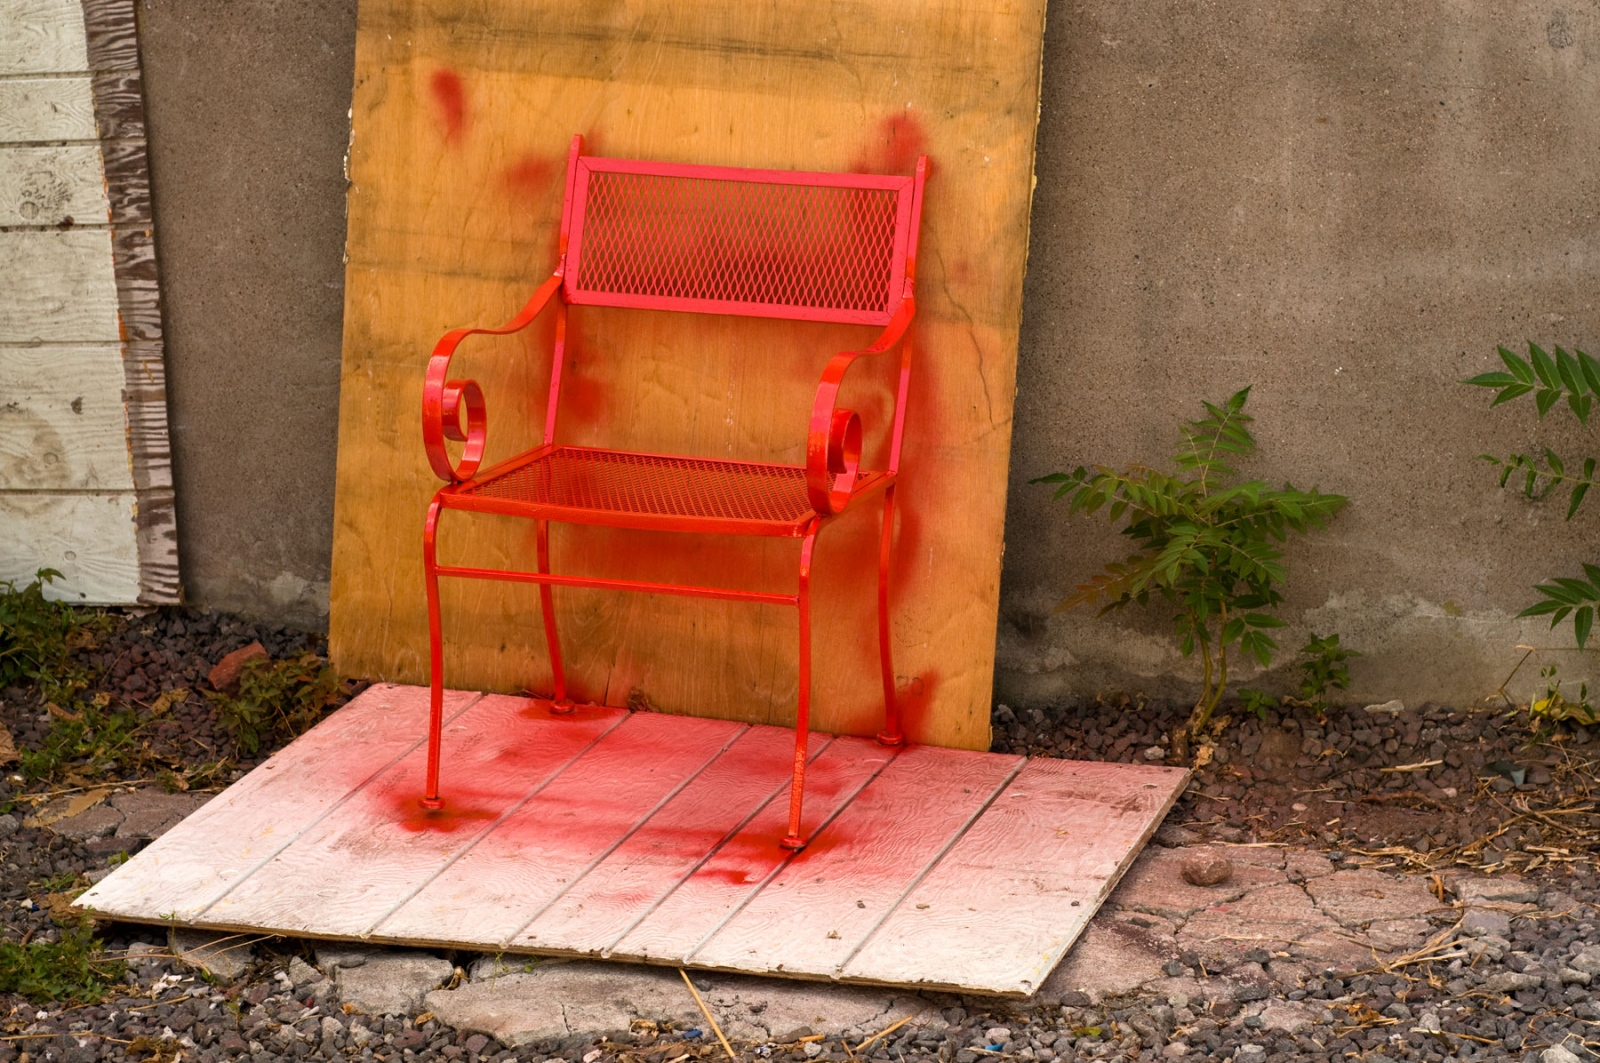 Art and Documentary Photography - Loading freshly-painted-red-chair.jpg